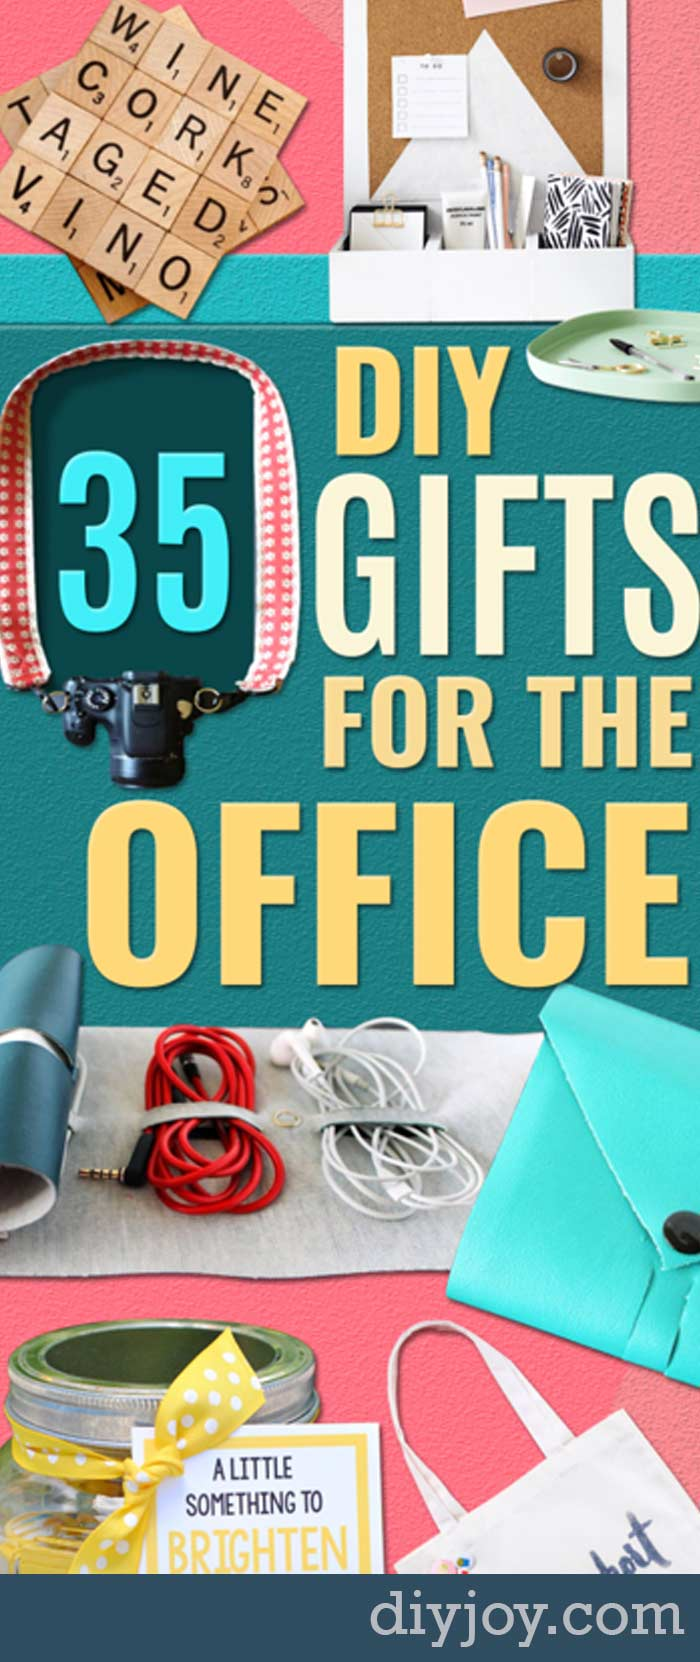 DIY Gifts for the Office - DYI Gift Ideas for Boss, Coworkers, Assistant, Friends